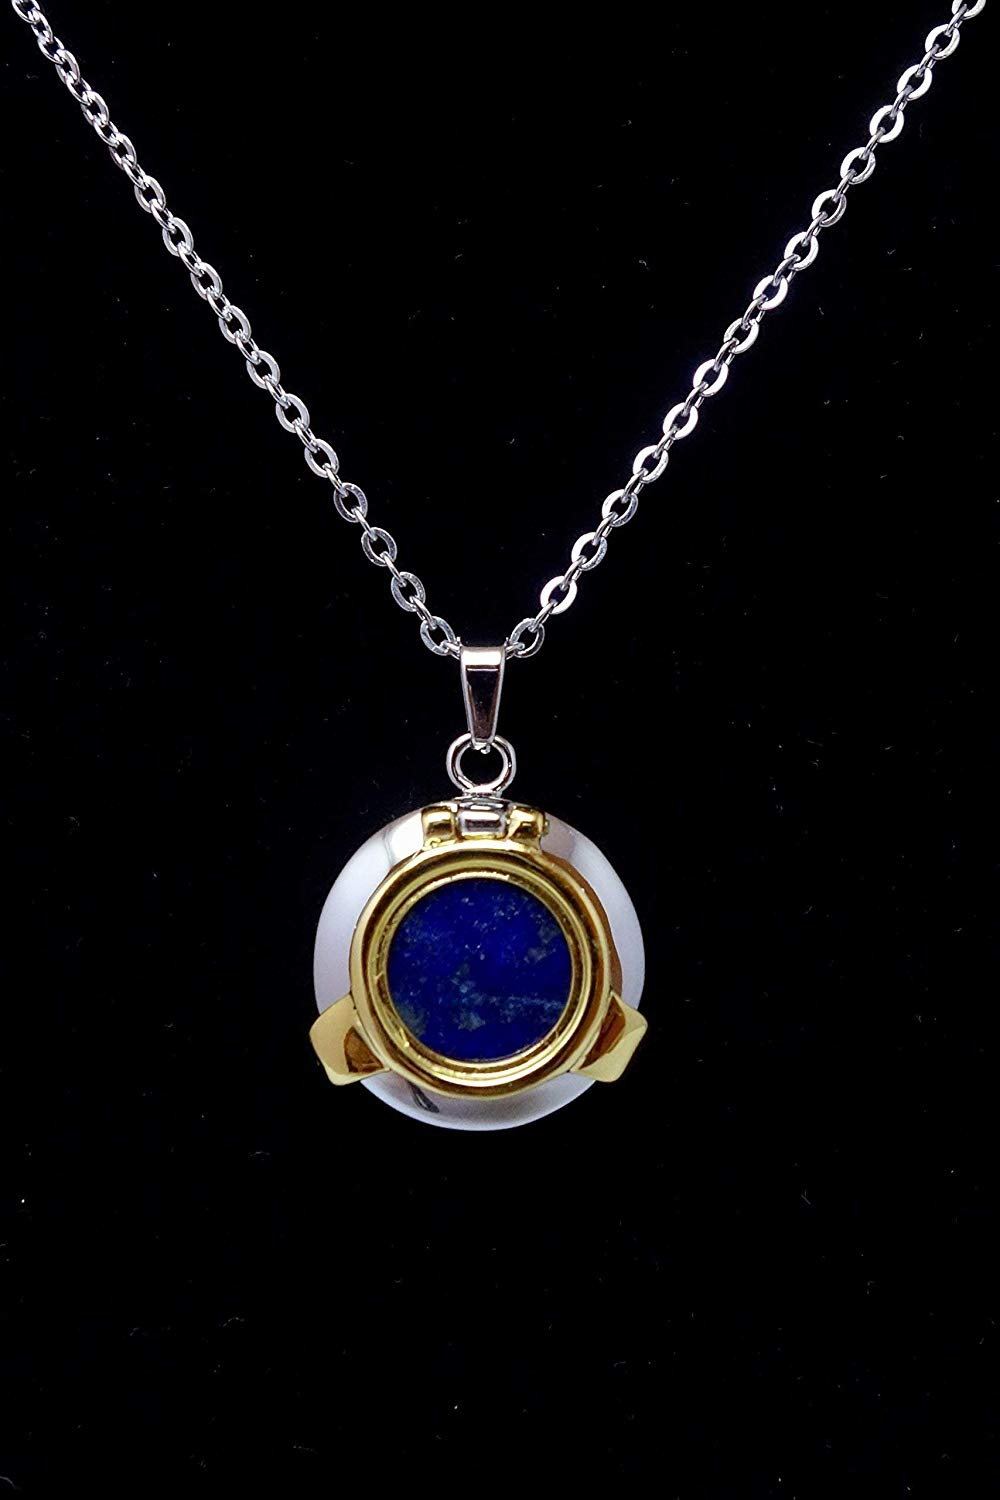 Genuine Lapis Lazuli Pendant Necklace, Nautical Blue Steampunk Porthole Necklace Unique Birthday Wedding Anniversary Gift for Her